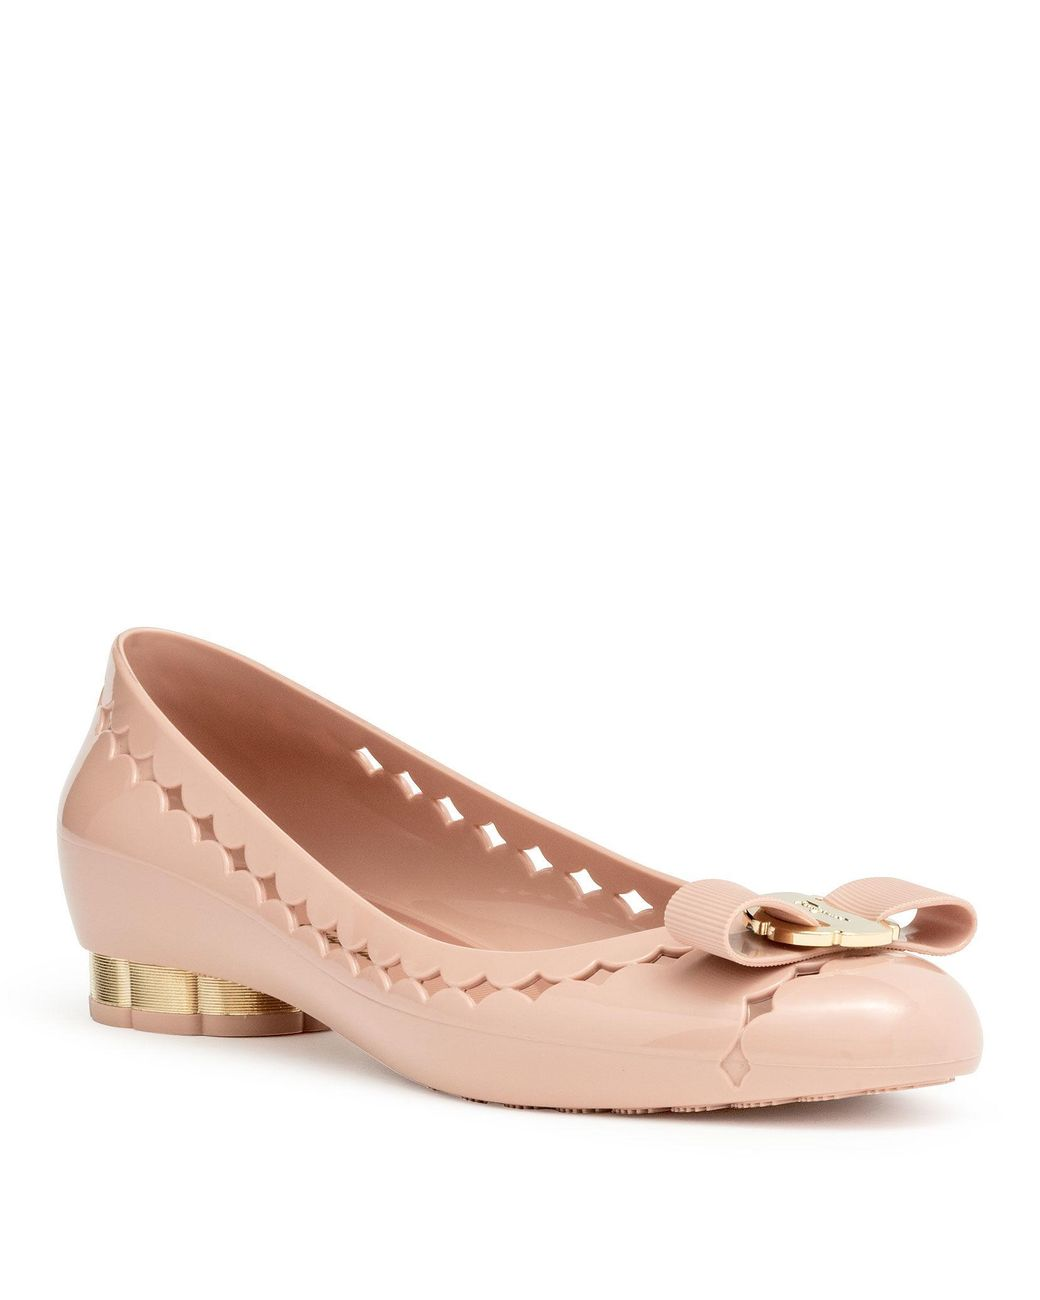 314f3eed3 Ferragamo Jelly Ballet Flat in Pink - Save 57% - Lyst